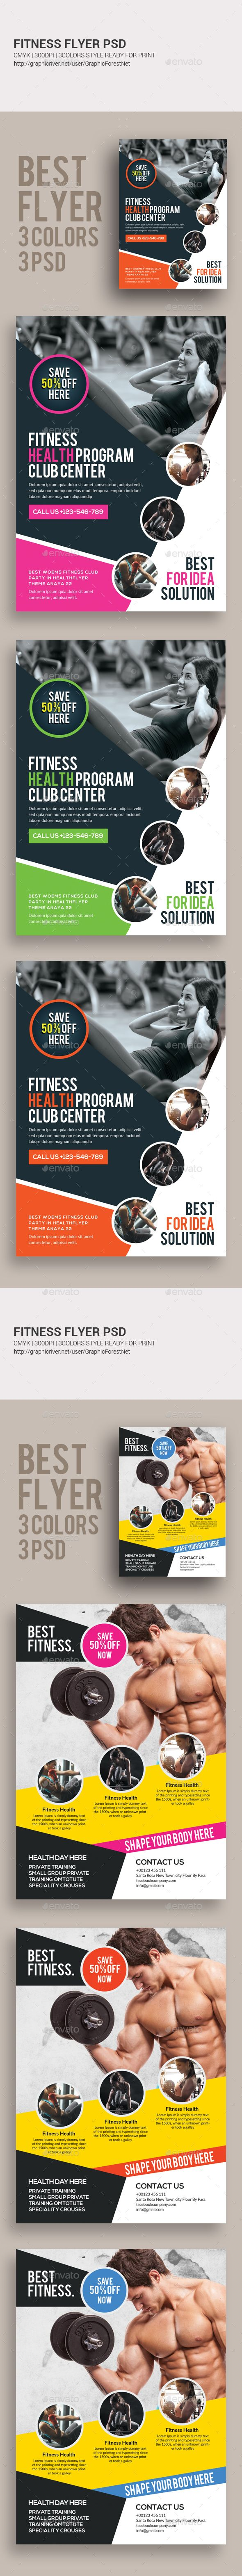 Fitness Flyers Design Template Bundle - Corporate Flyers Design Template PSD. Download here: https://graphicriver.net/item/fitness-flyers-bundle/19249409?ref=yinkira